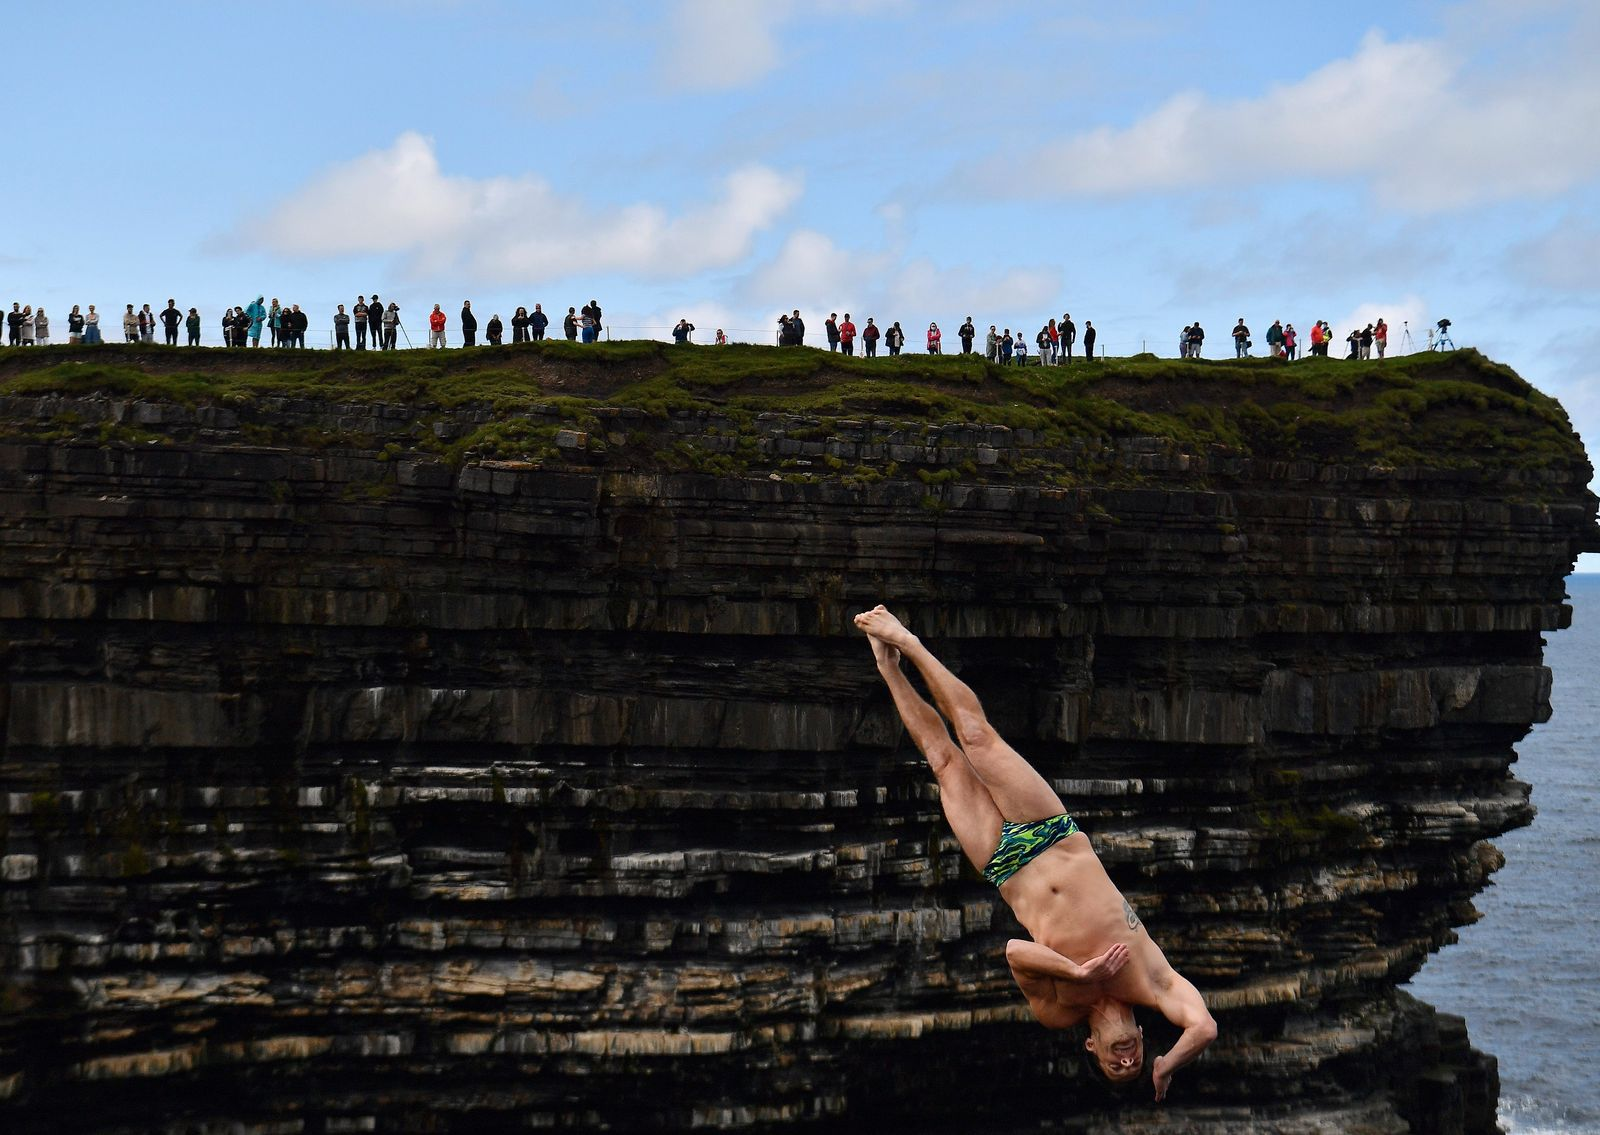 Cliff diving competition in Ireland